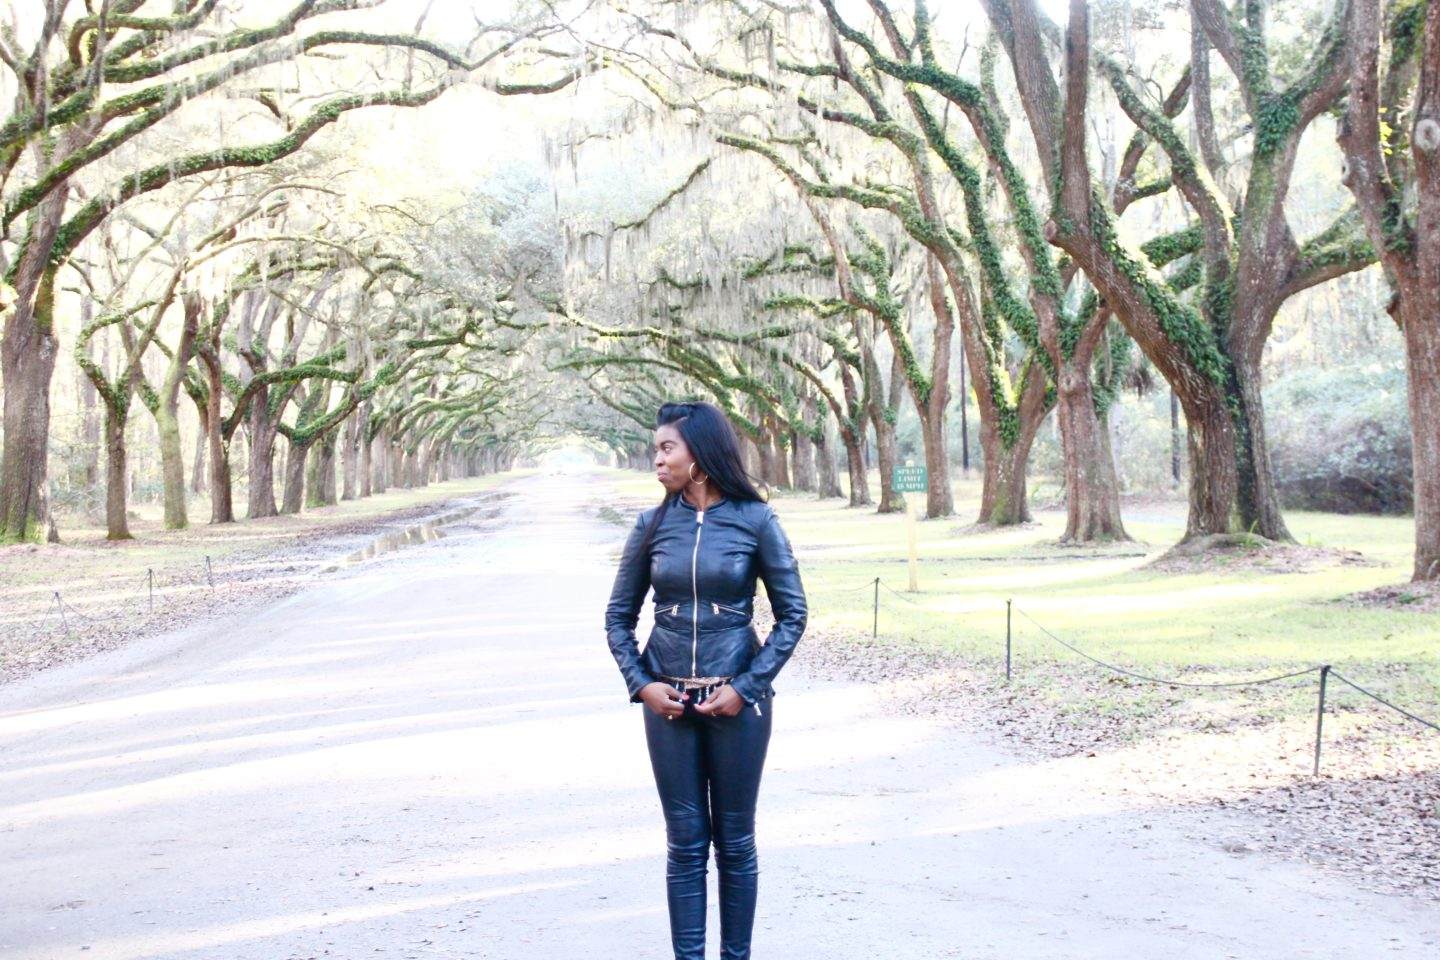 Savannah plantations